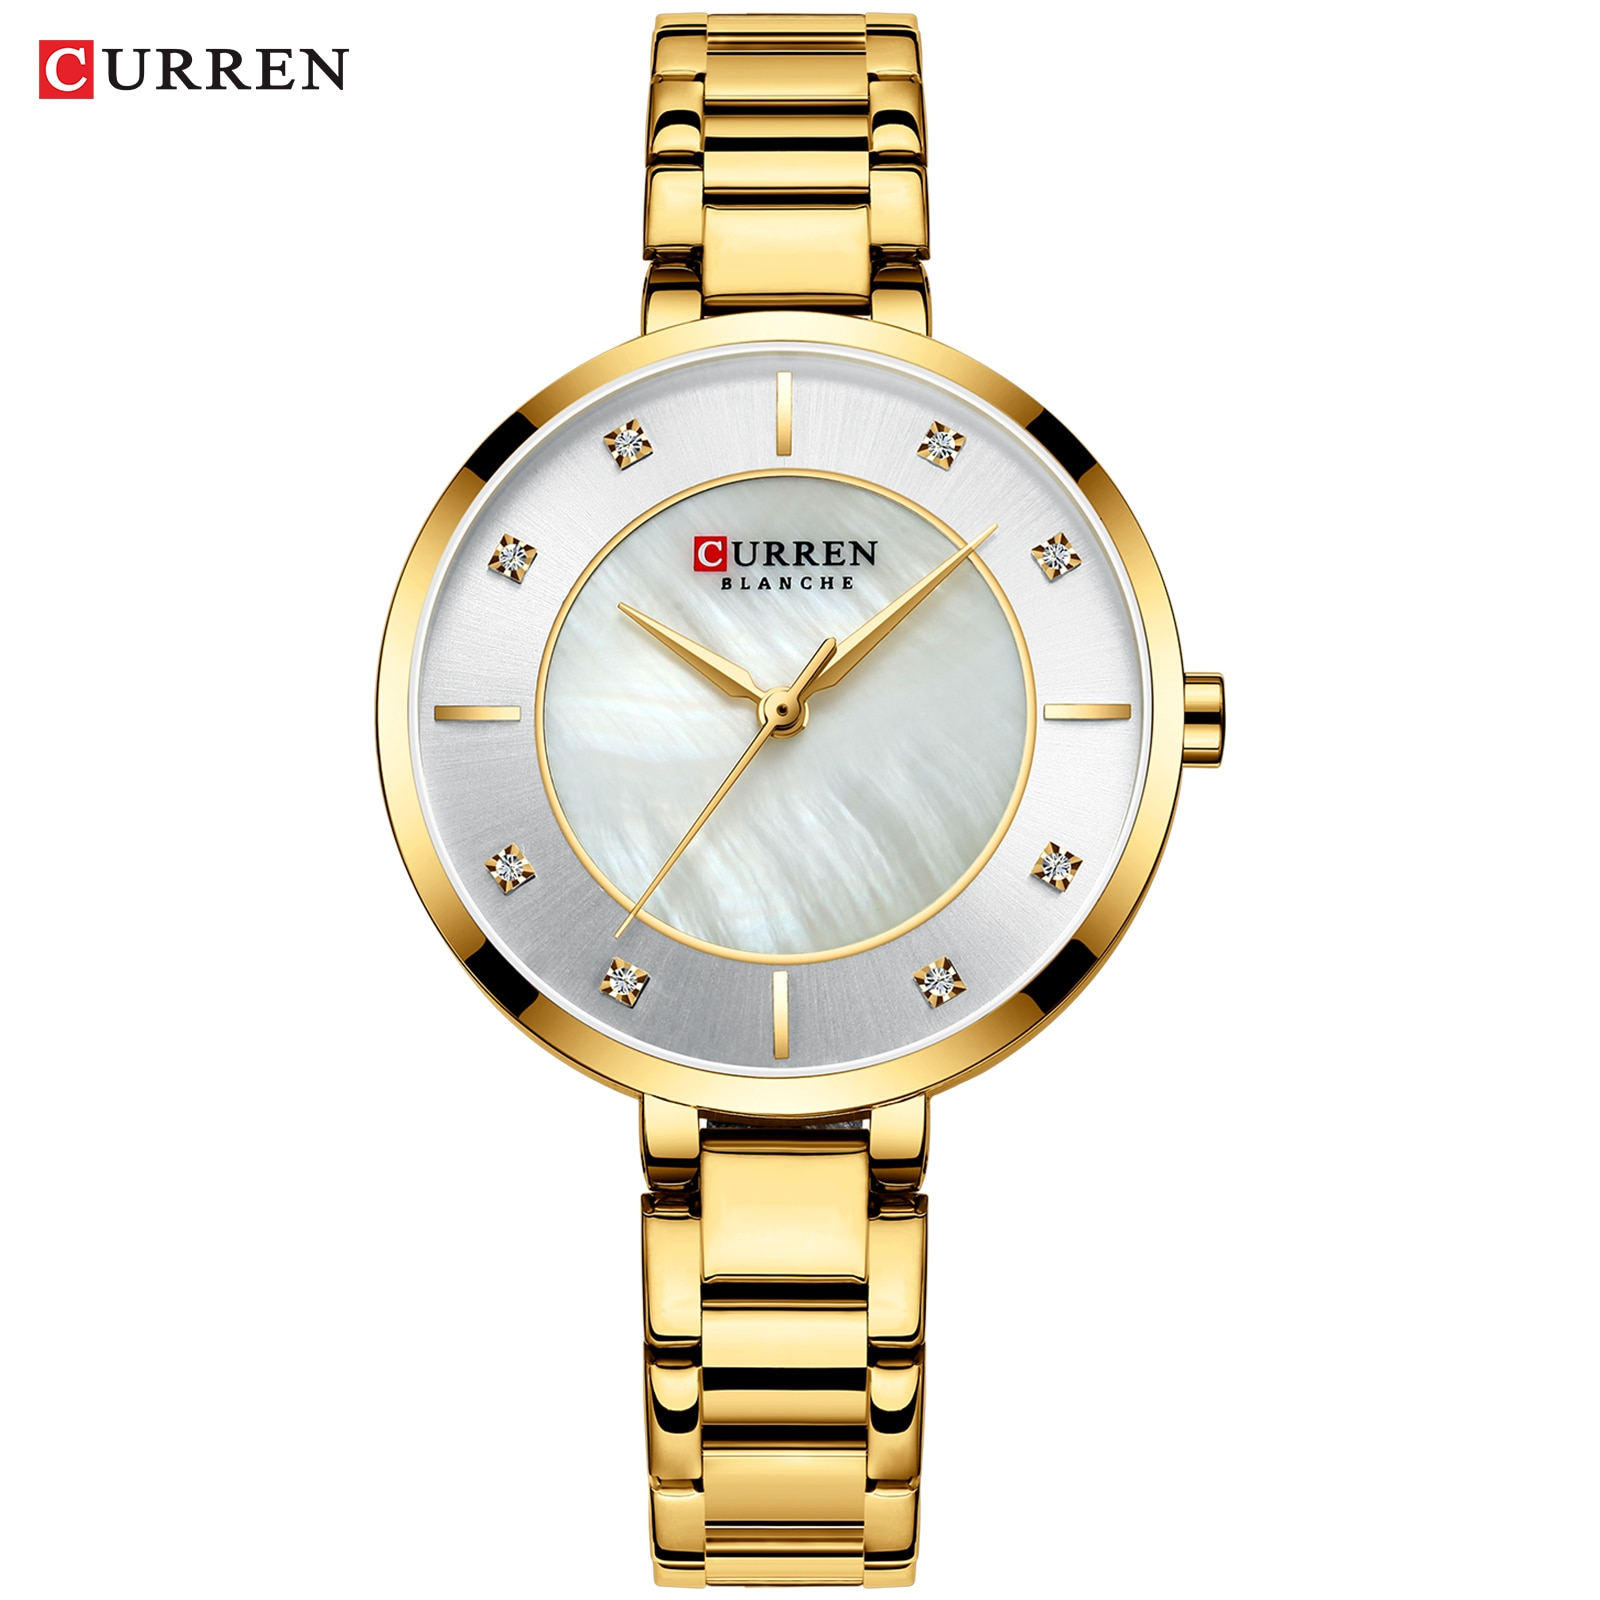 CURREN 2019 Womens Watches Golden Rhinestone Analog Round Quartz Watch Dress Bracelet Chain Waterproof Lady Wristwatch Dropship enlarge